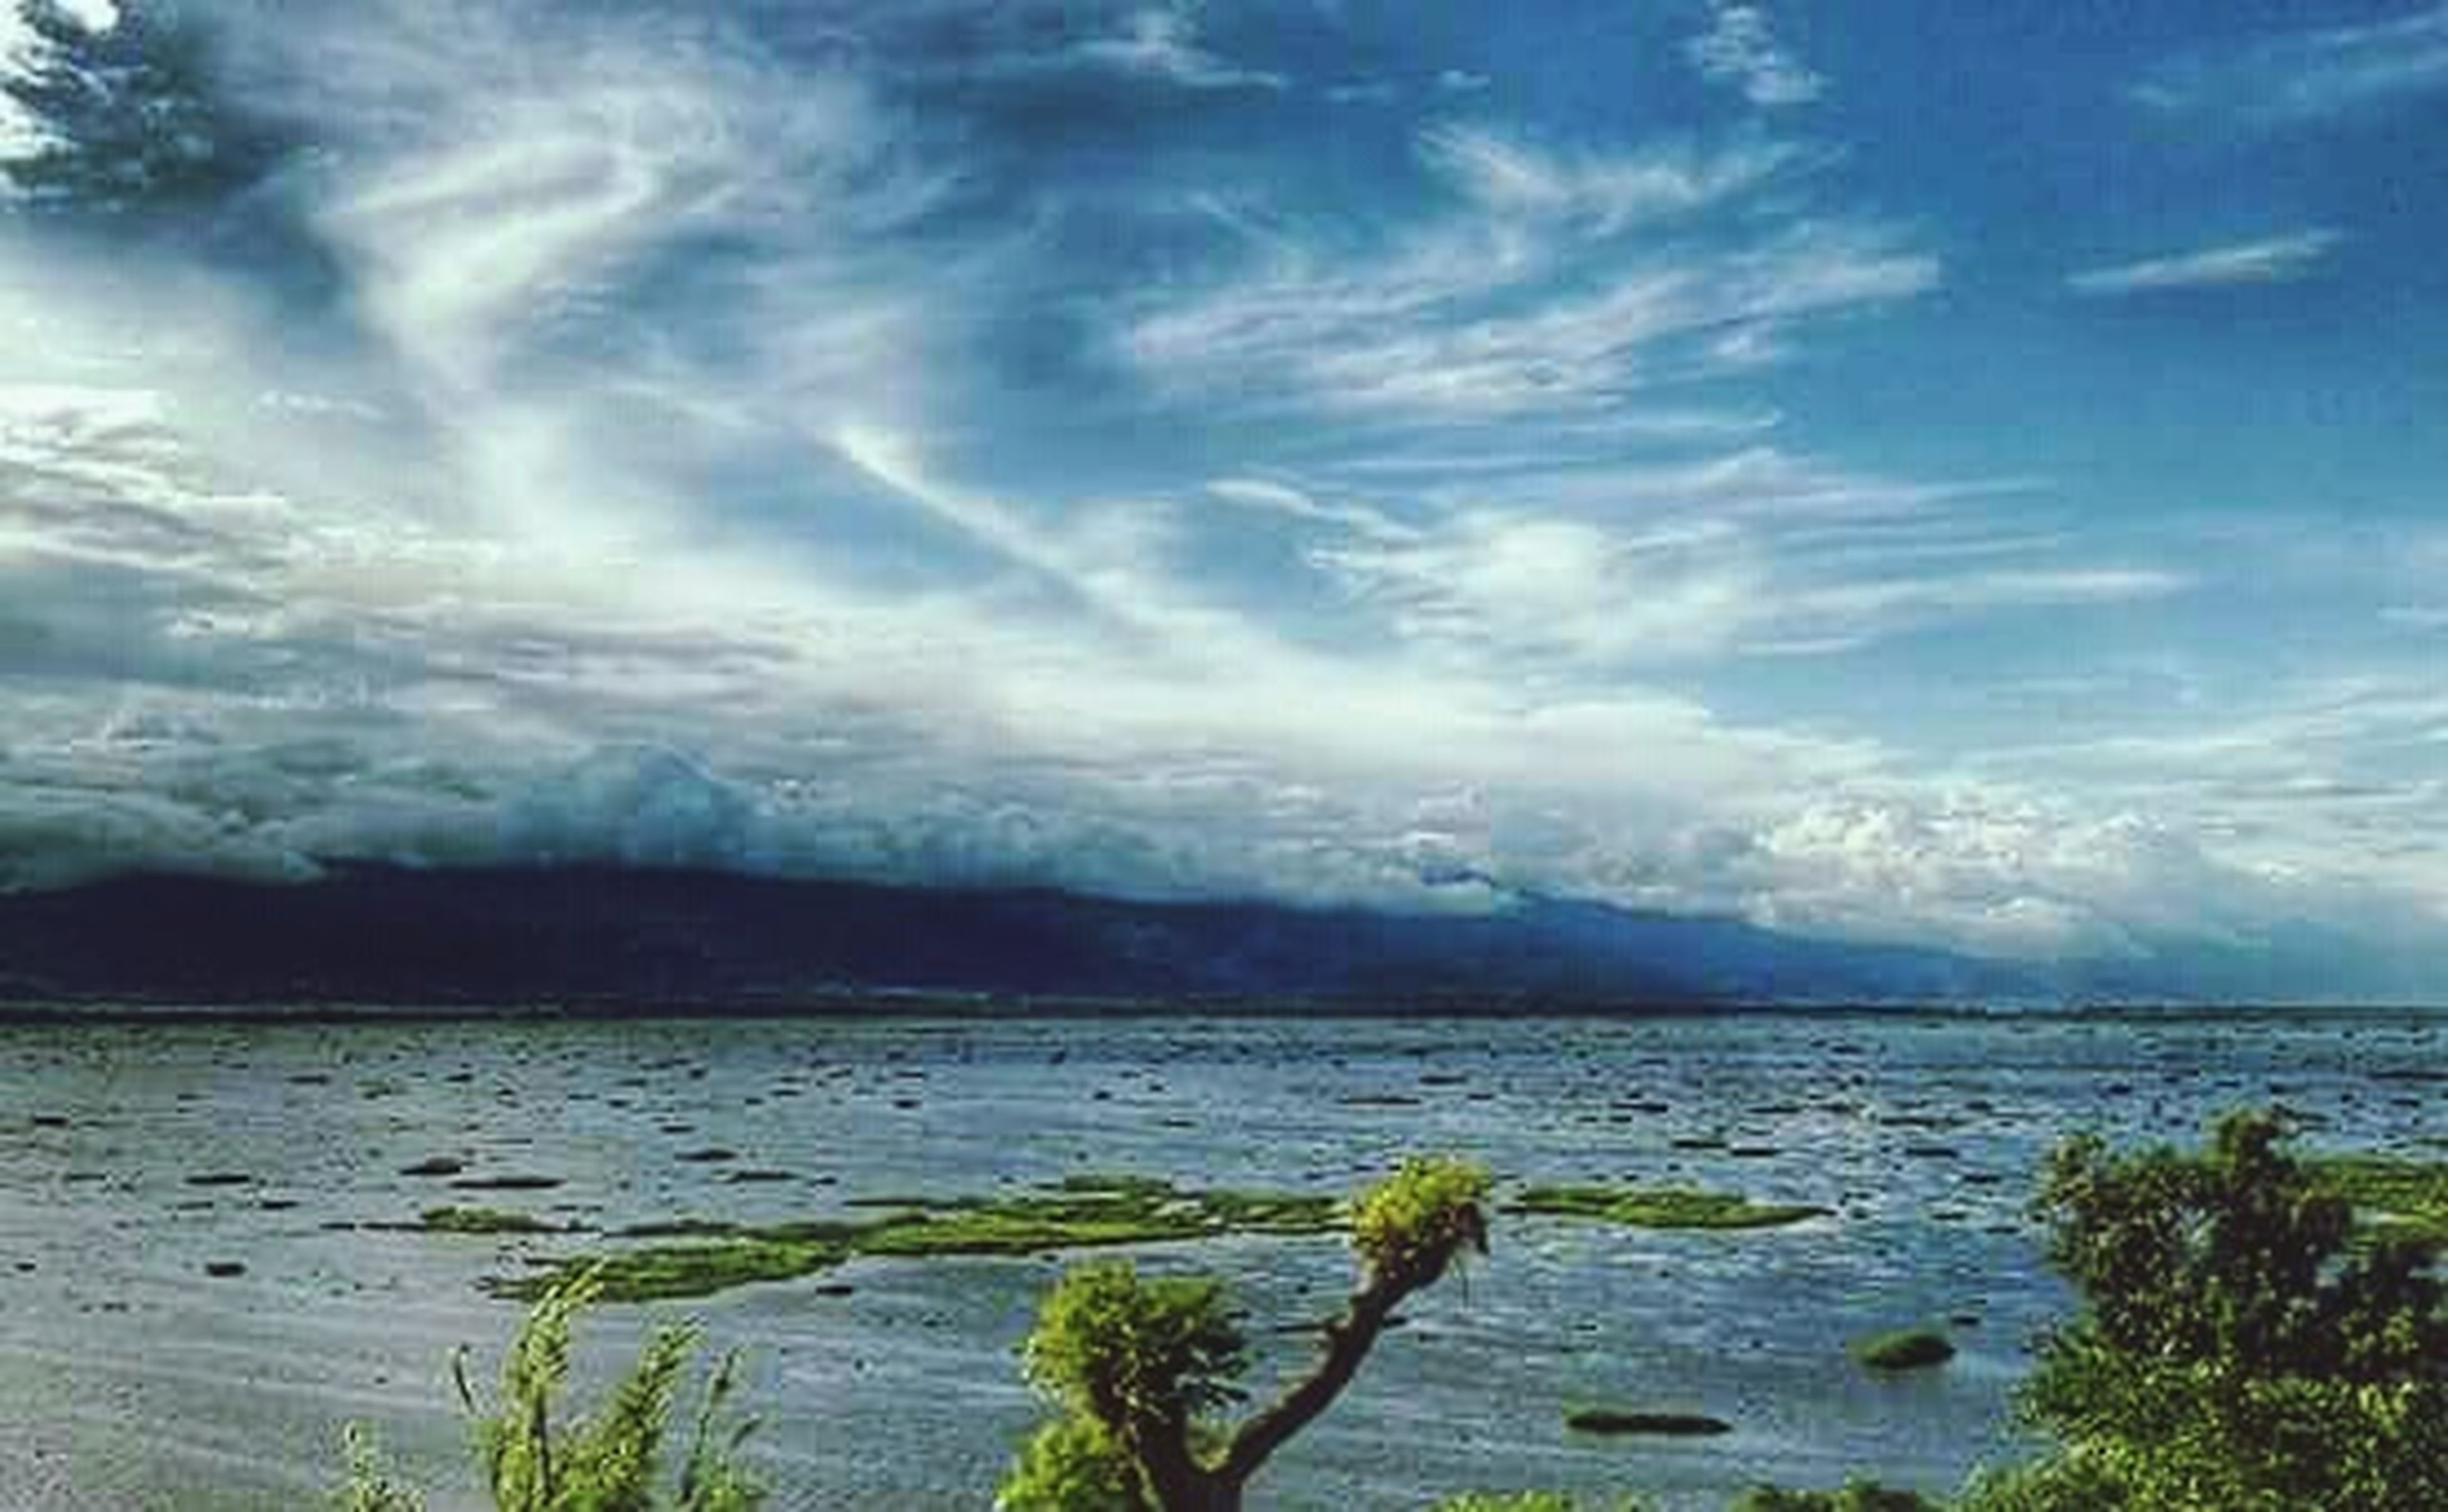 cloud - sky, sky, sea, nature, scenics, outdoors, beauty in nature, no people, water, beach, horizon over water, landscape, day, tranquility, horizon, blue, city